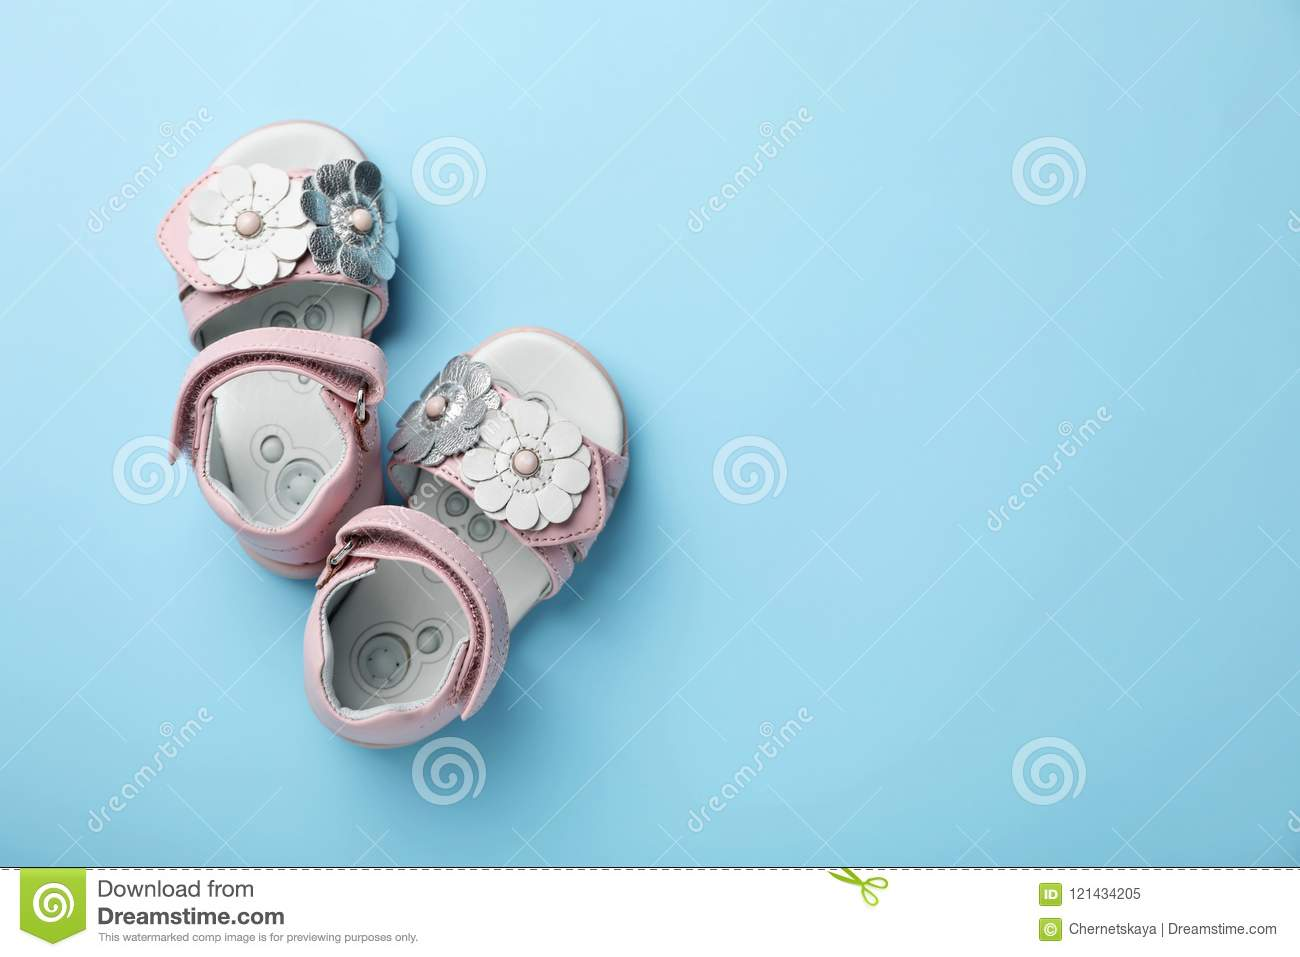 98b8be3c40b29 Pair Of Cute Baby Sandals On Color Background Stock Image - Image of ...